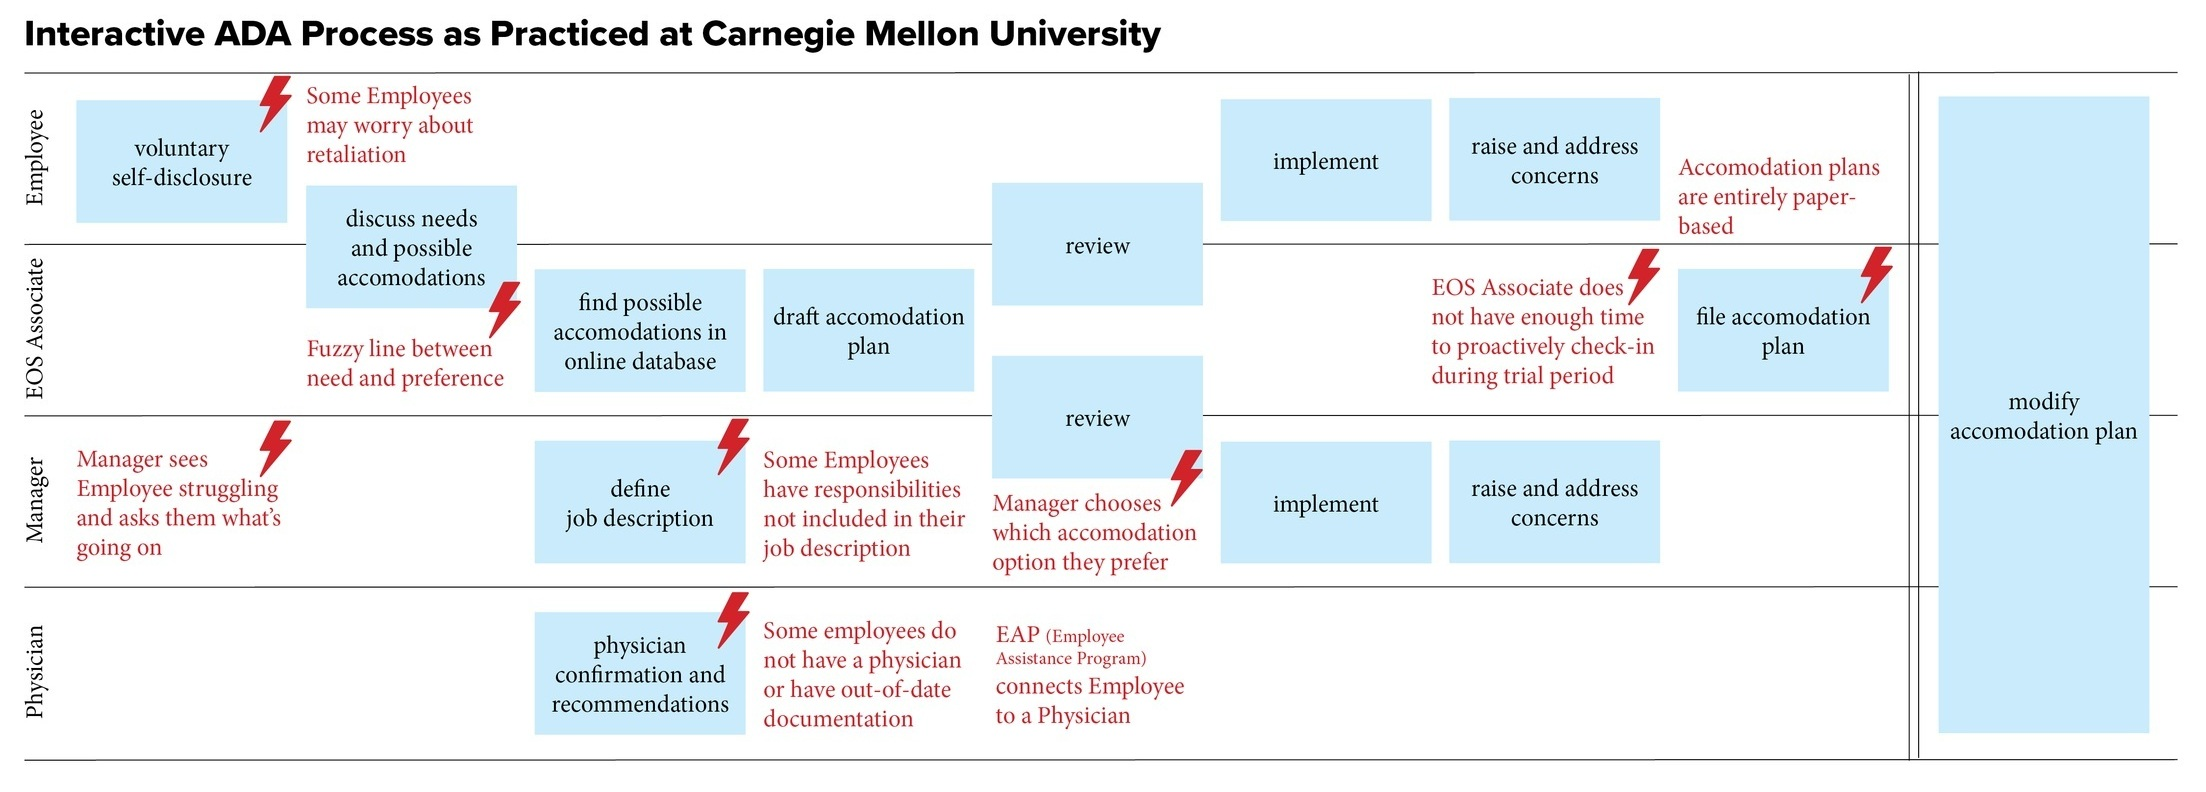 I created this high-level sequence flow diagram of the Interactive ADA process as practiced by Carnegie Mellon University based on an interview with an EOS Associate.